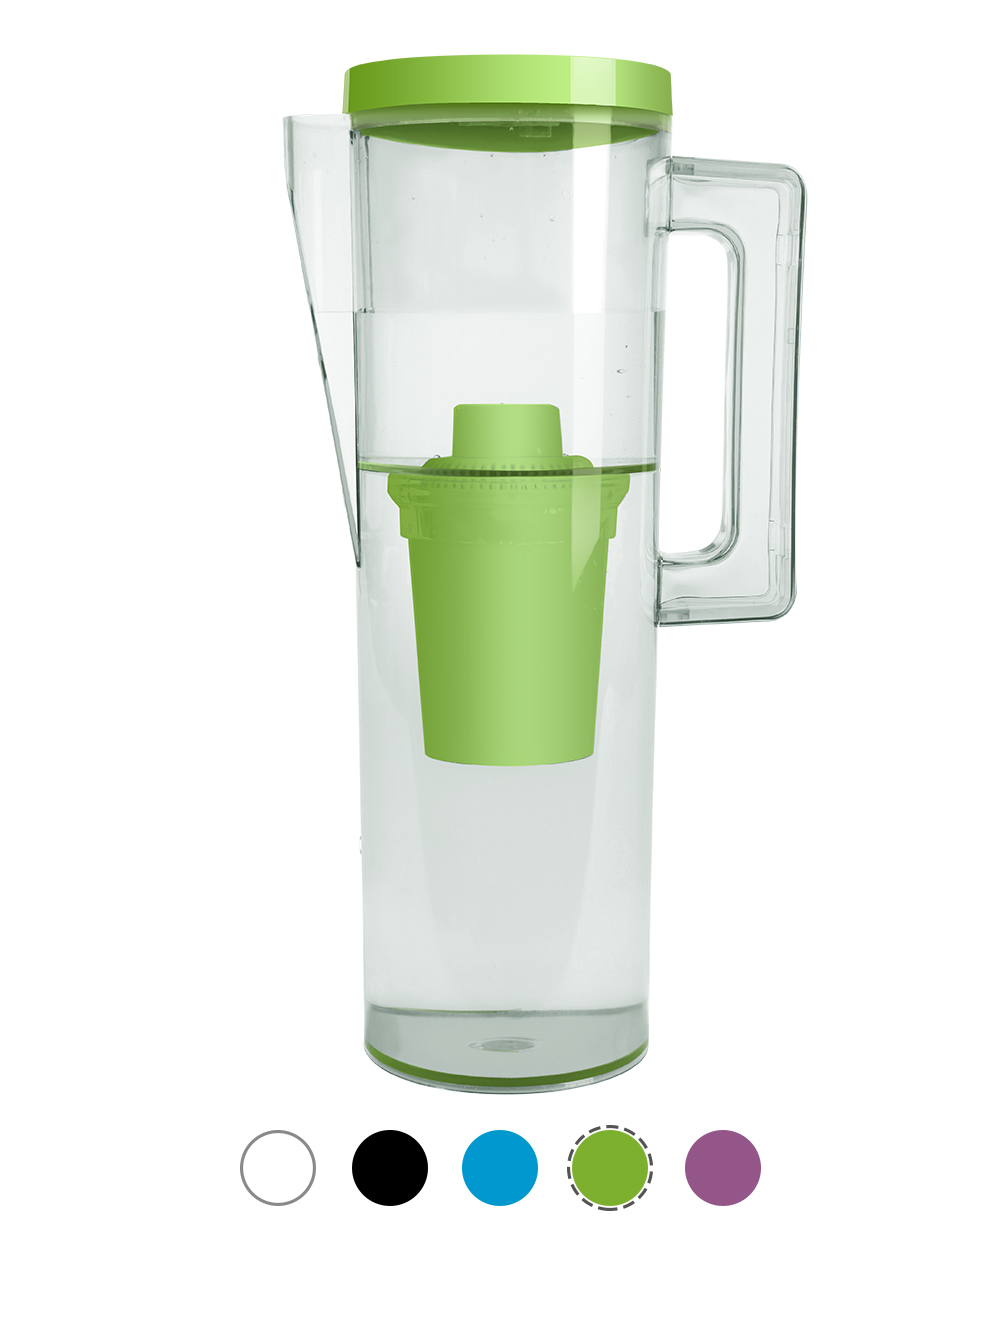 water-pitcher-with-filter-5.jpg